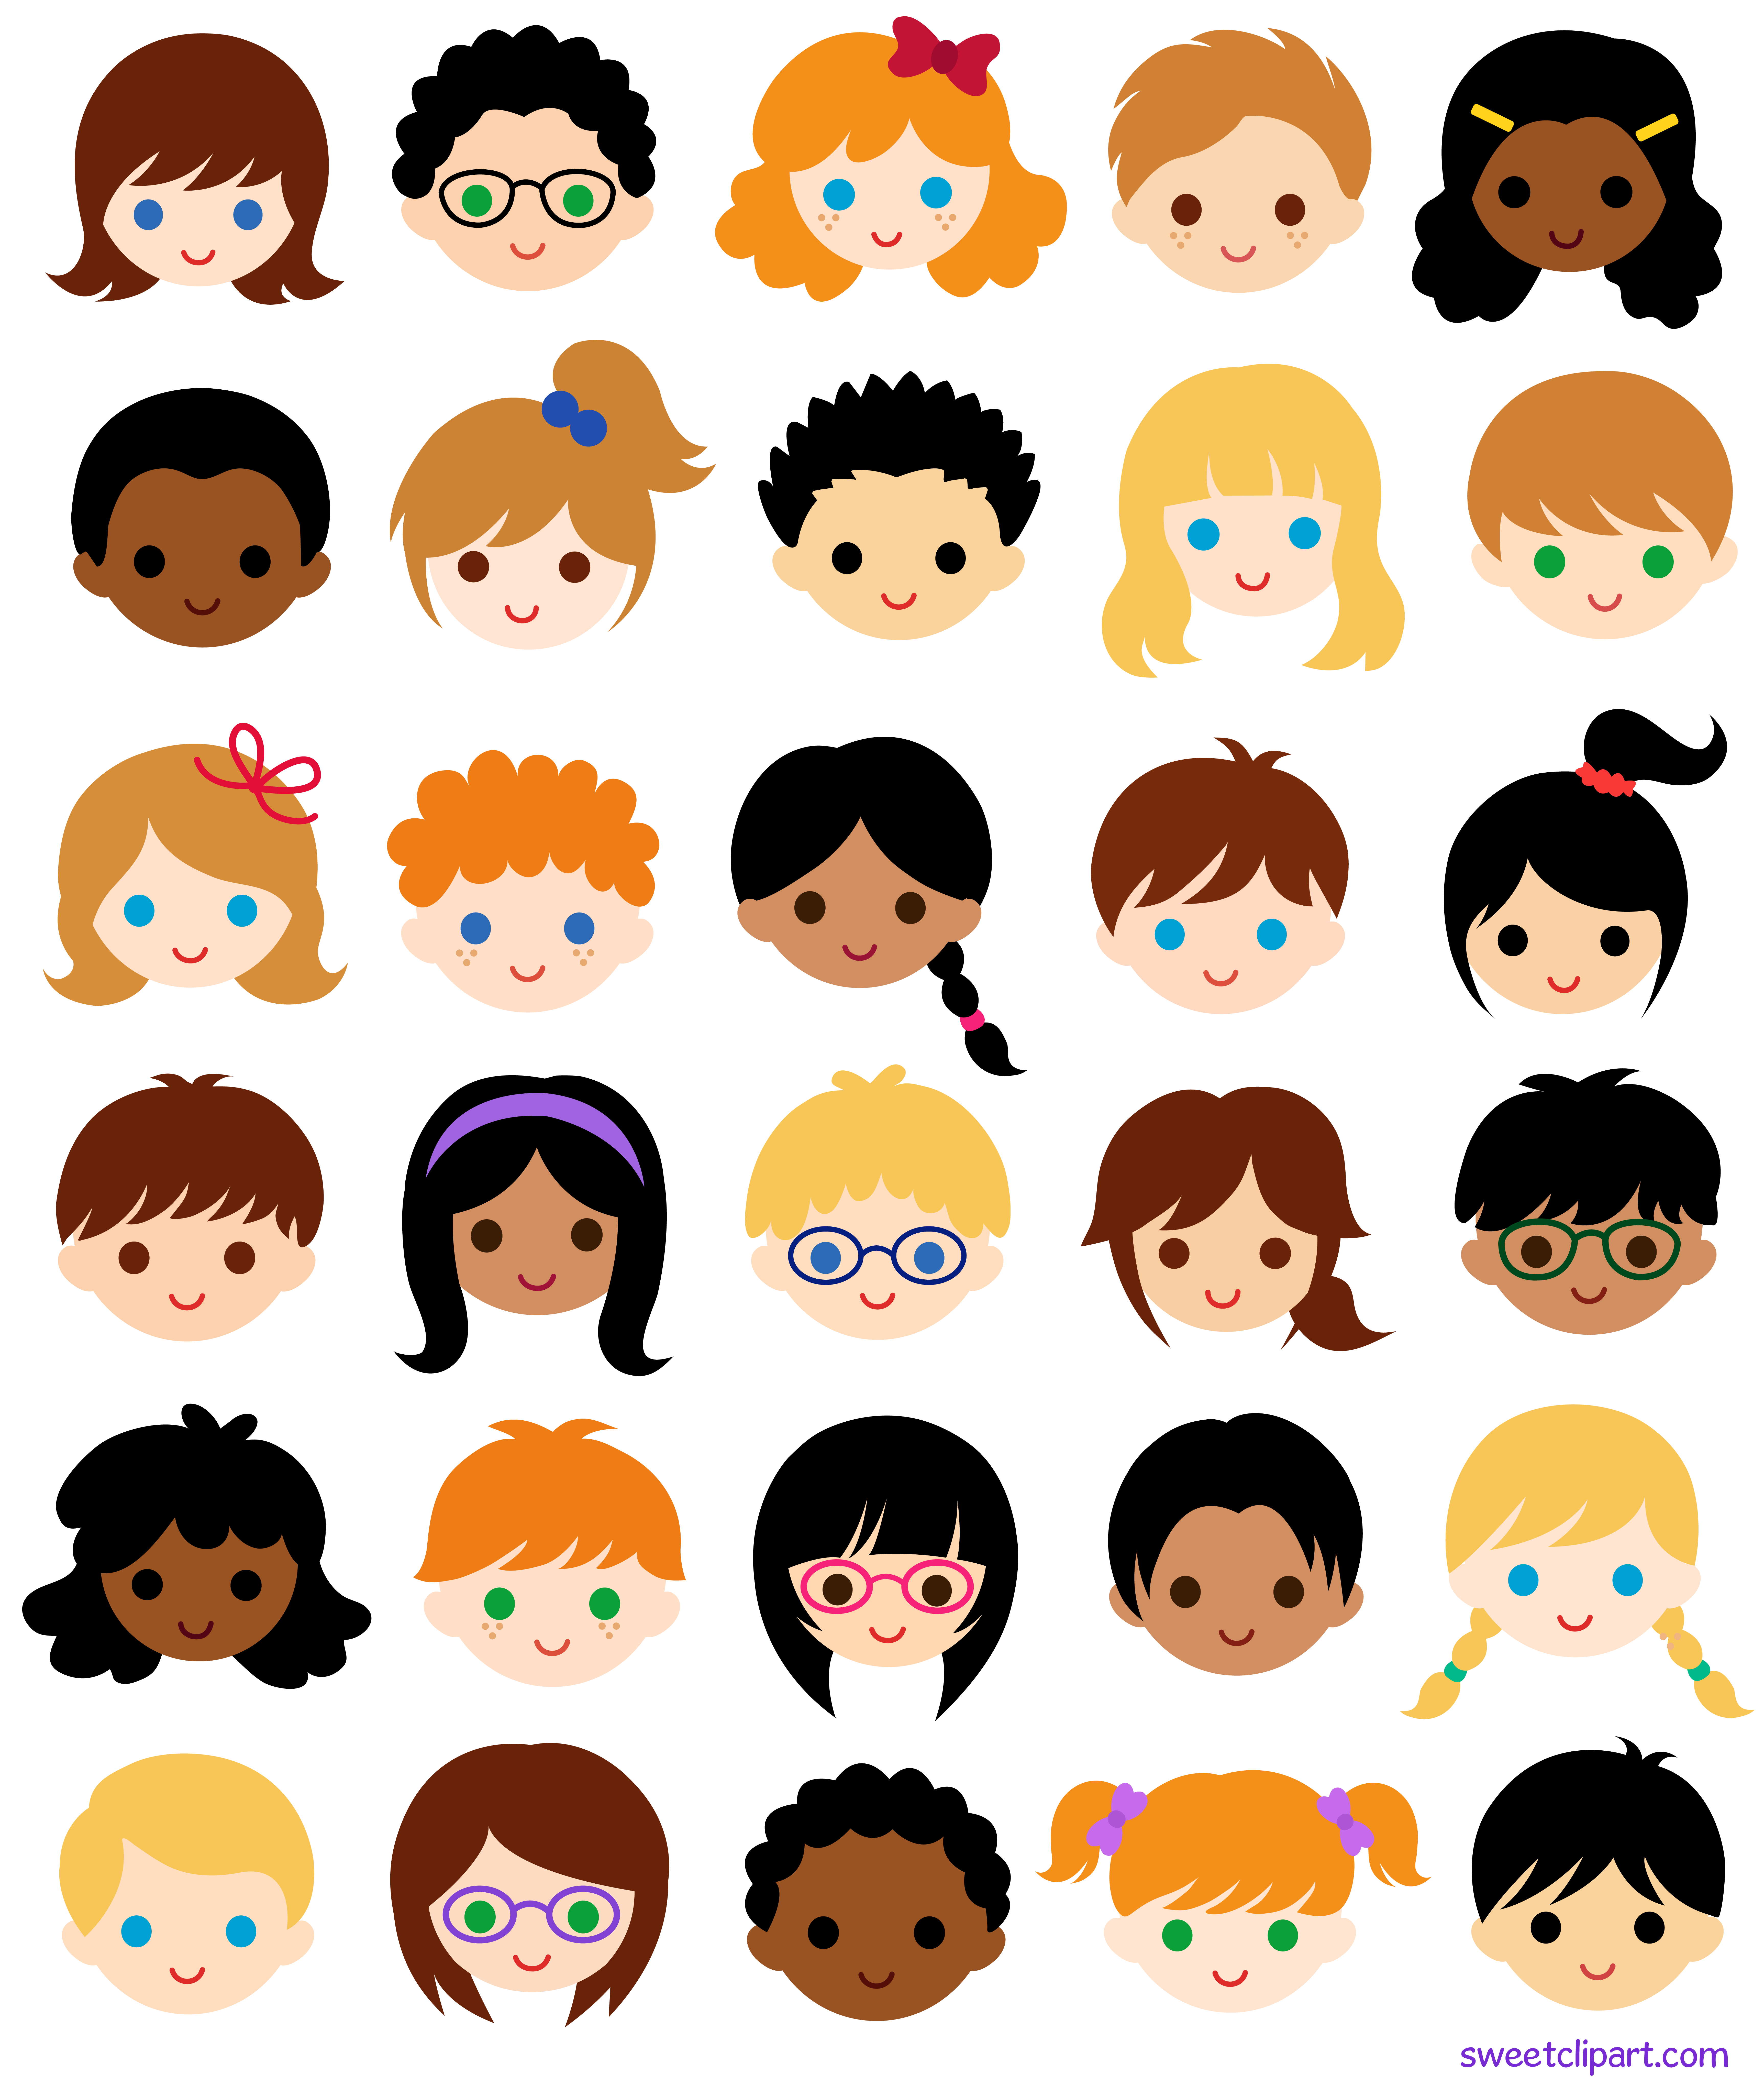 Multicultural People Clip Art - ClipArt Best